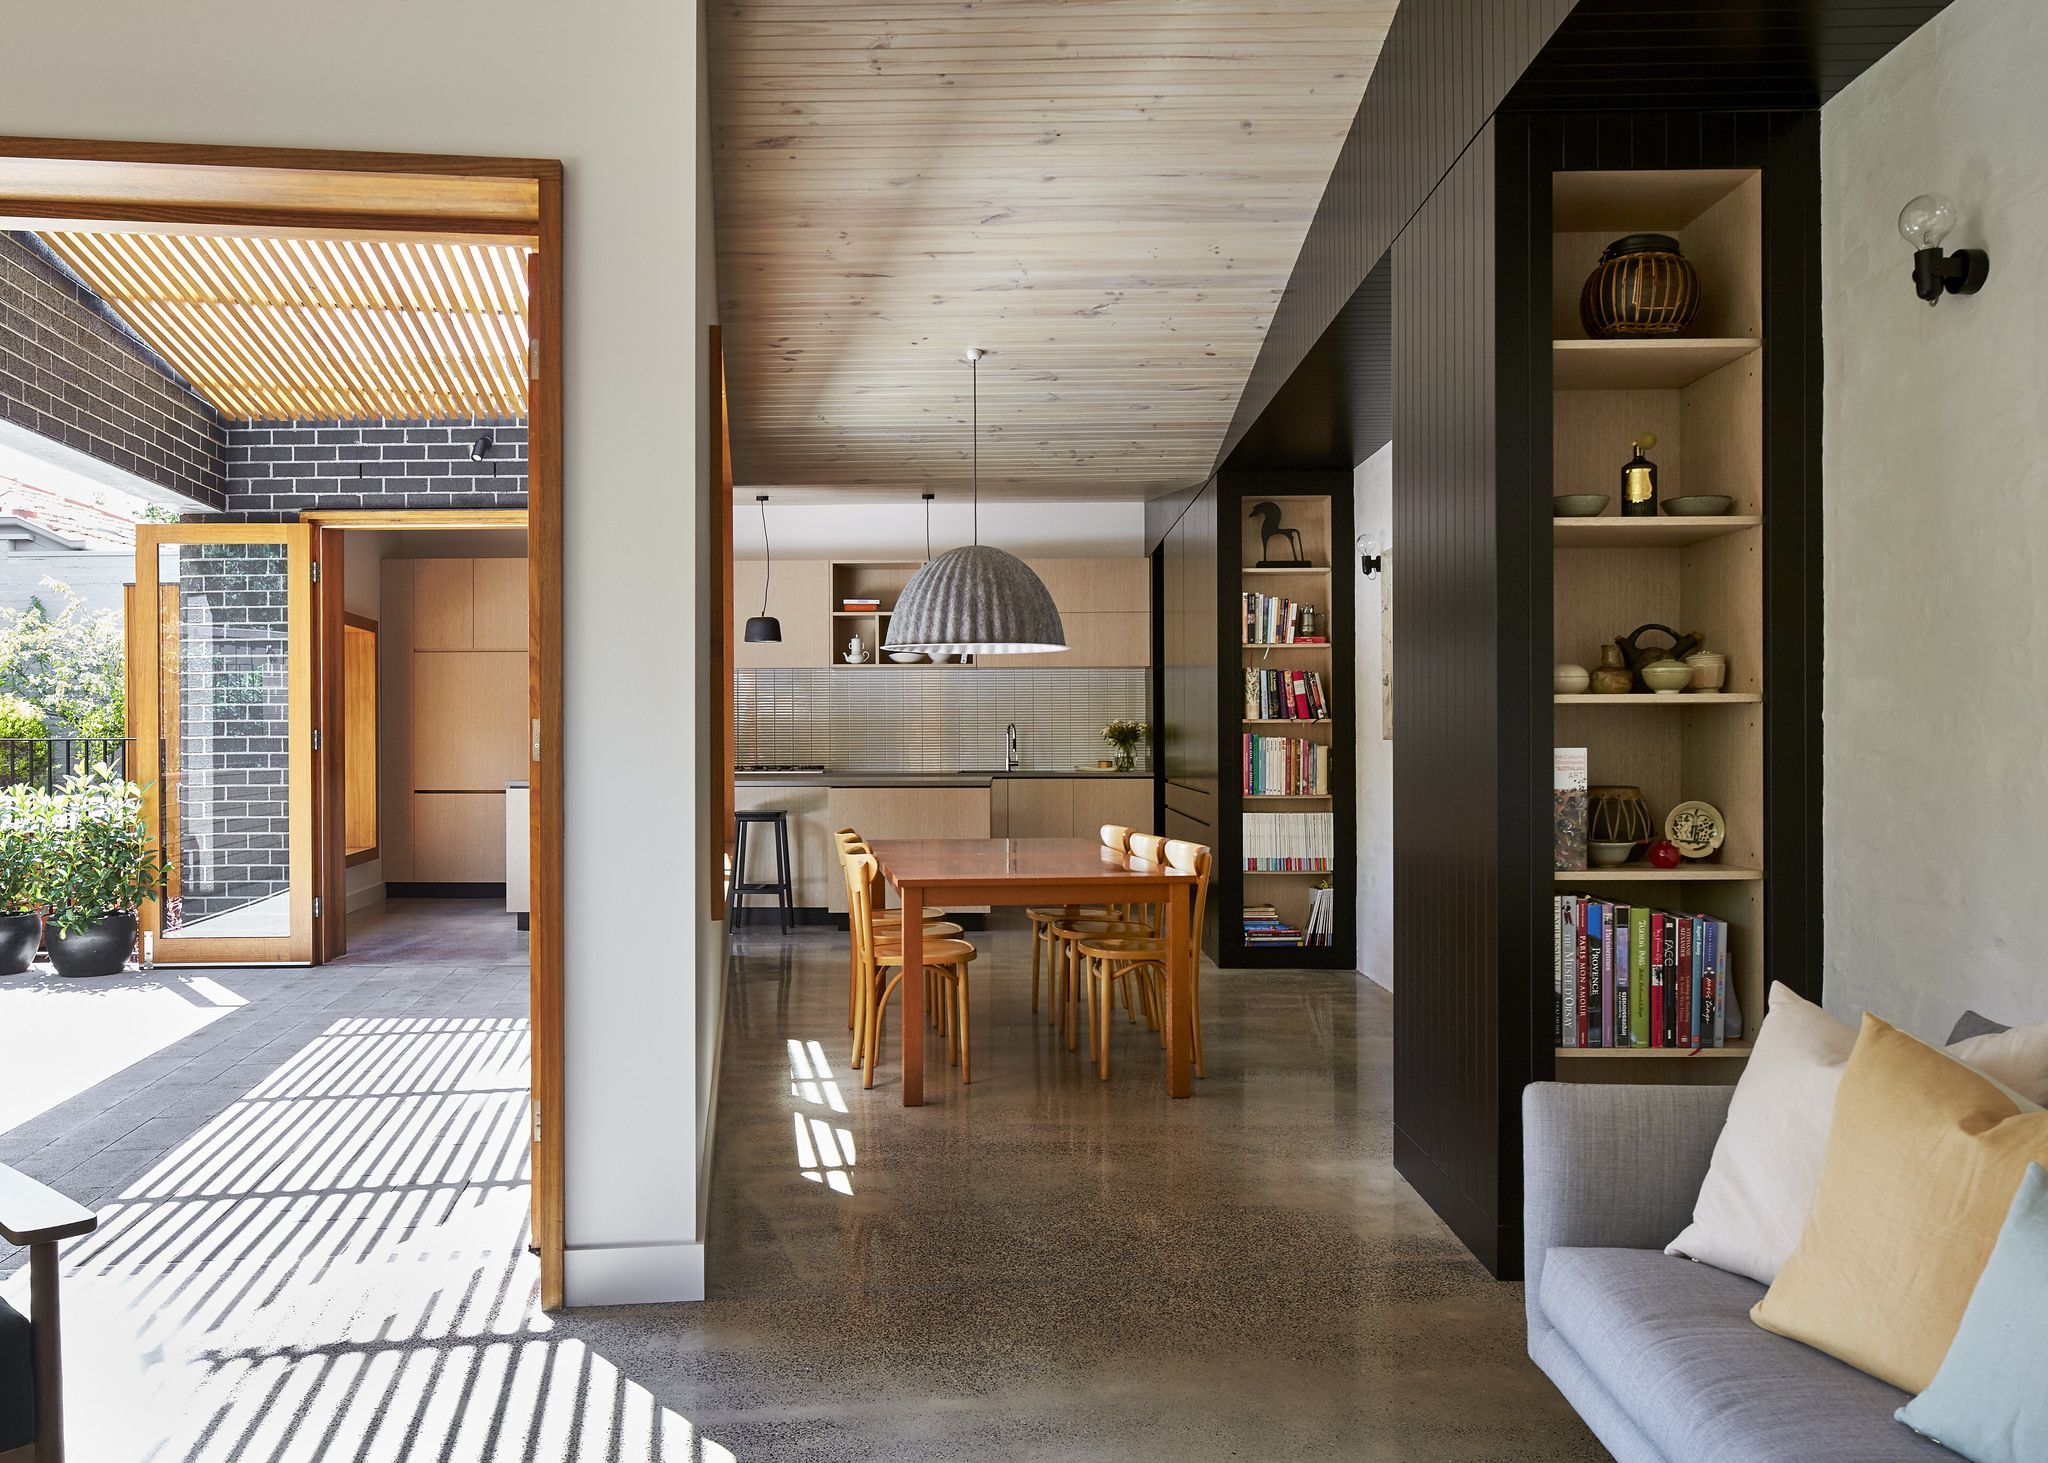 Rosebank House Project Was Realized By Make Architecture And It Involved The Spatial Extension Renovation Of An Edwardian In Kew